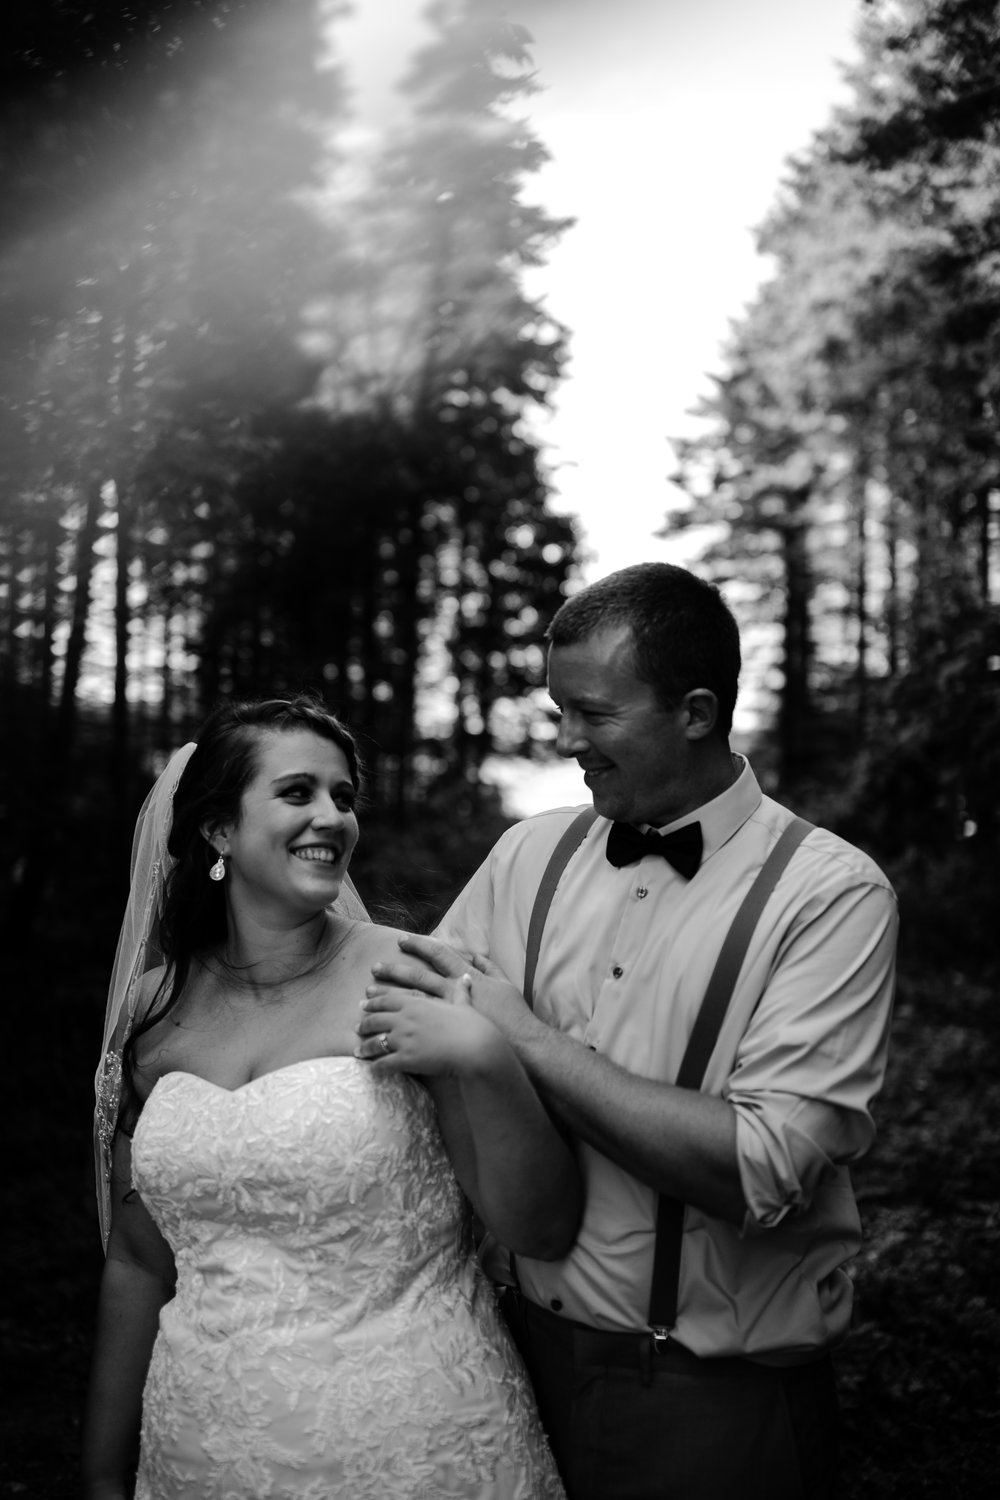 west-michigan-wedding-photographer-ludington-mi-trillium-creek-jaclyn-russ-812.jpg